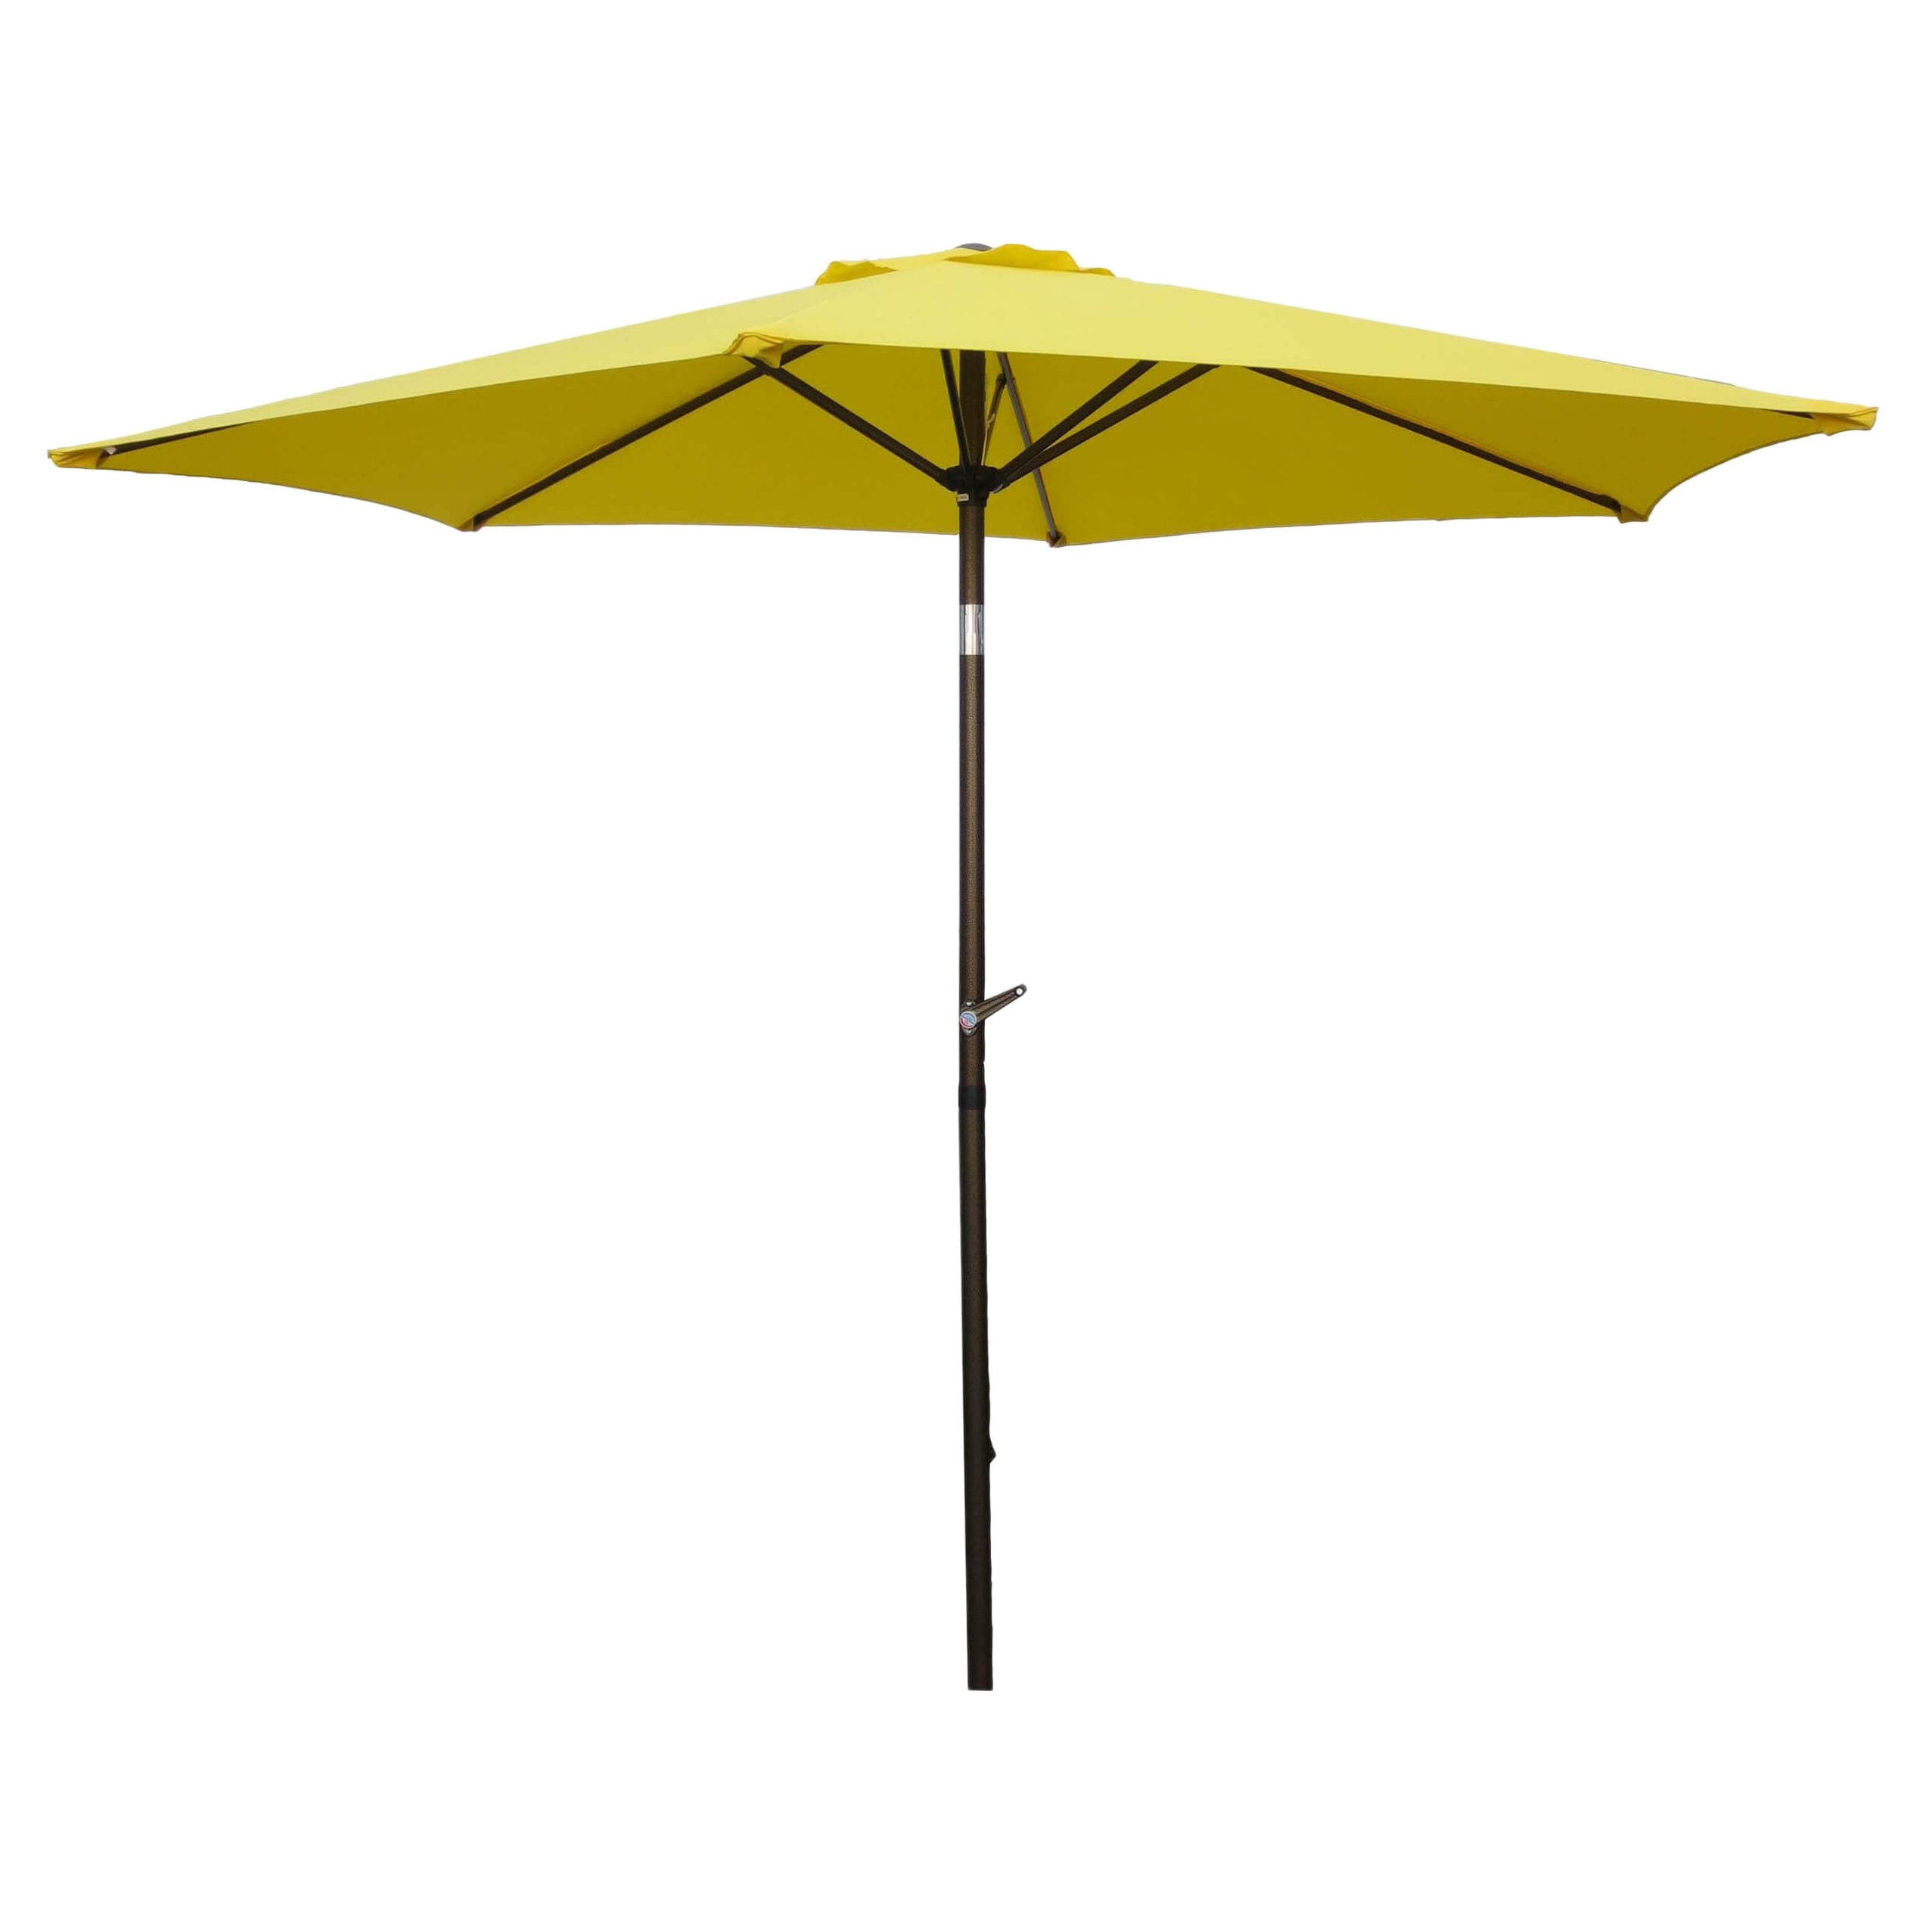 Most Recently Released Patio Umbrella 8 Foot Pertaining To Frome Market Umbrellas (Gallery 8 of 20)